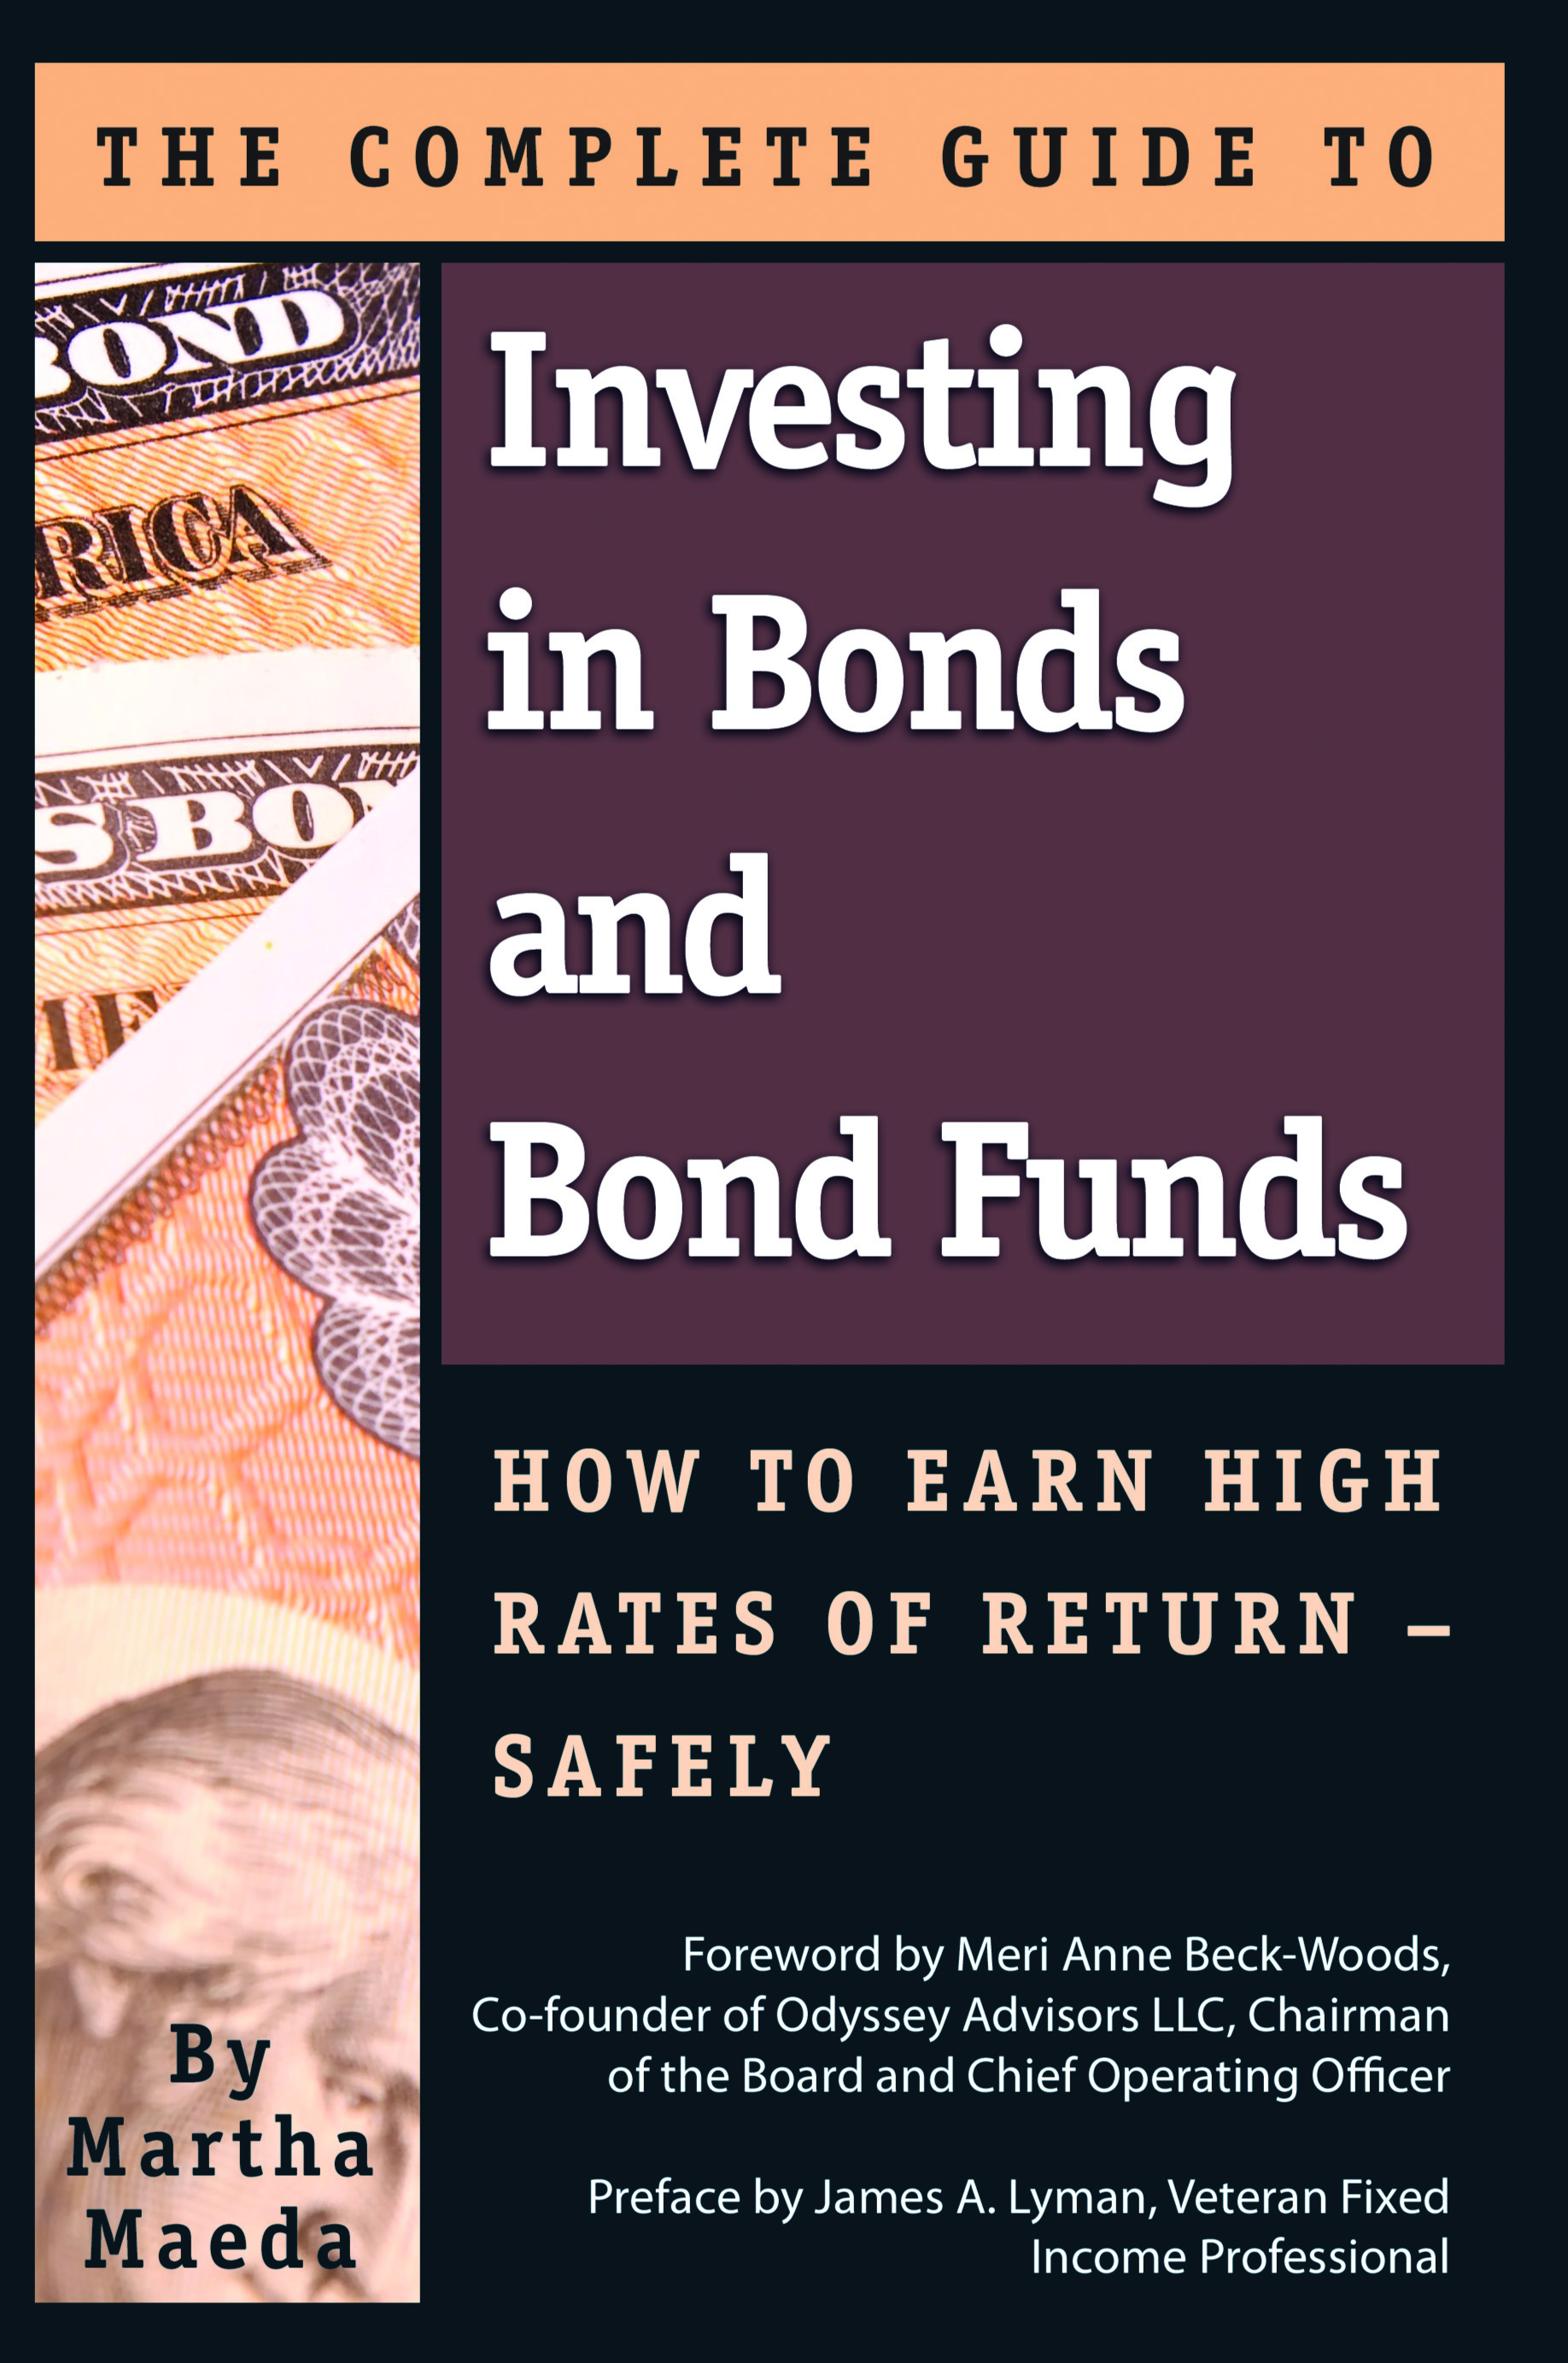 The Complete Guide to Investing in Bonds and Bond Funds  How to Earn High Rates of Return Safely